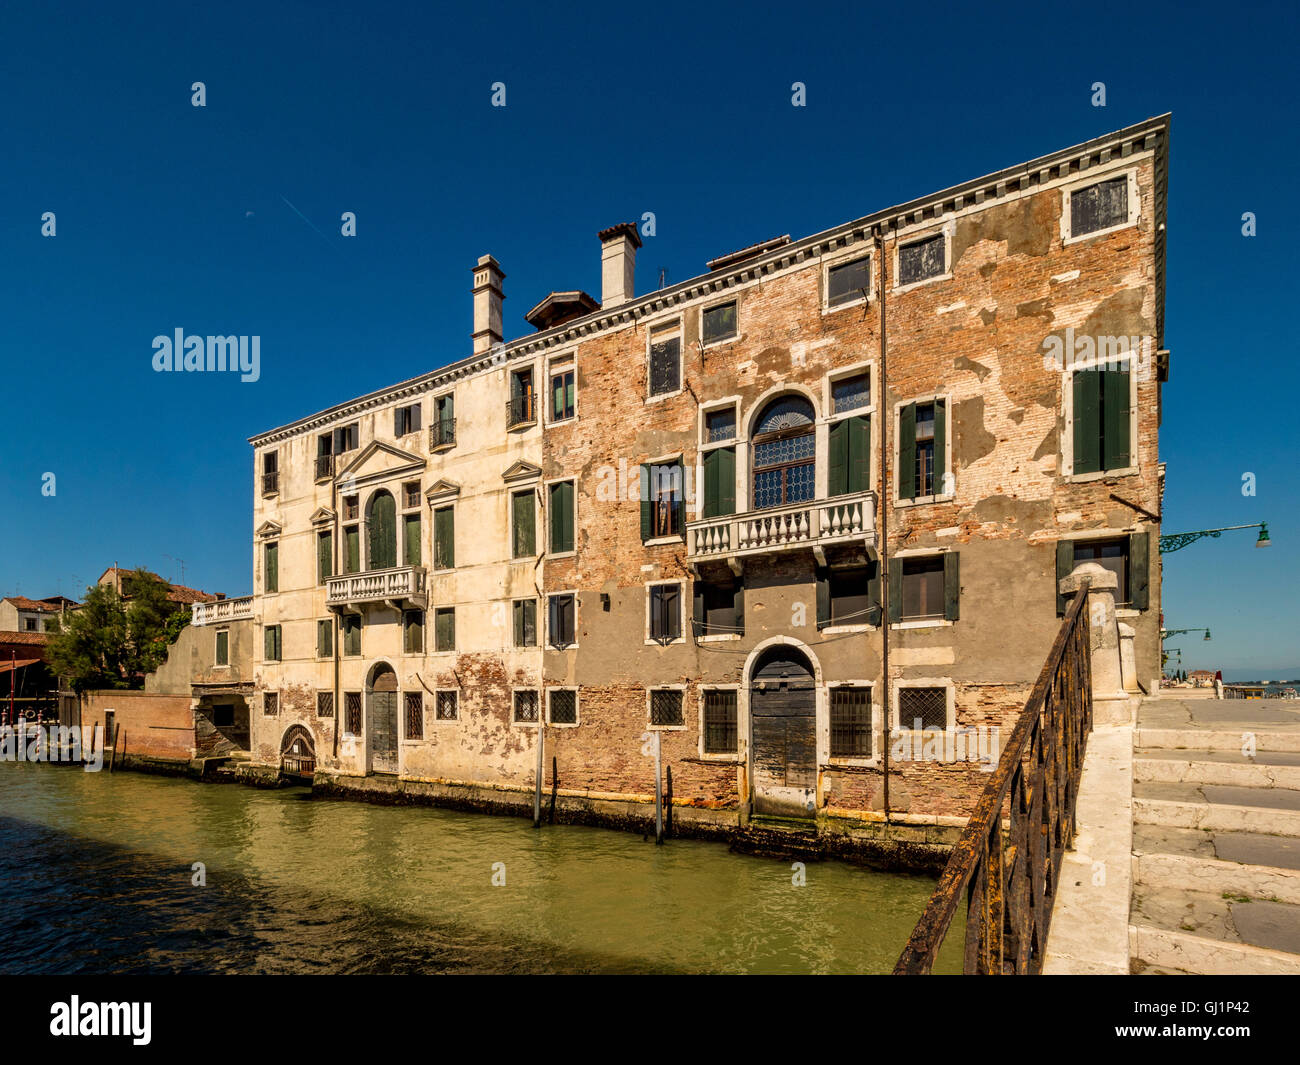 Traditional canal side building, with missing render and exposed bricks. Venice, Italy. - Stock Image